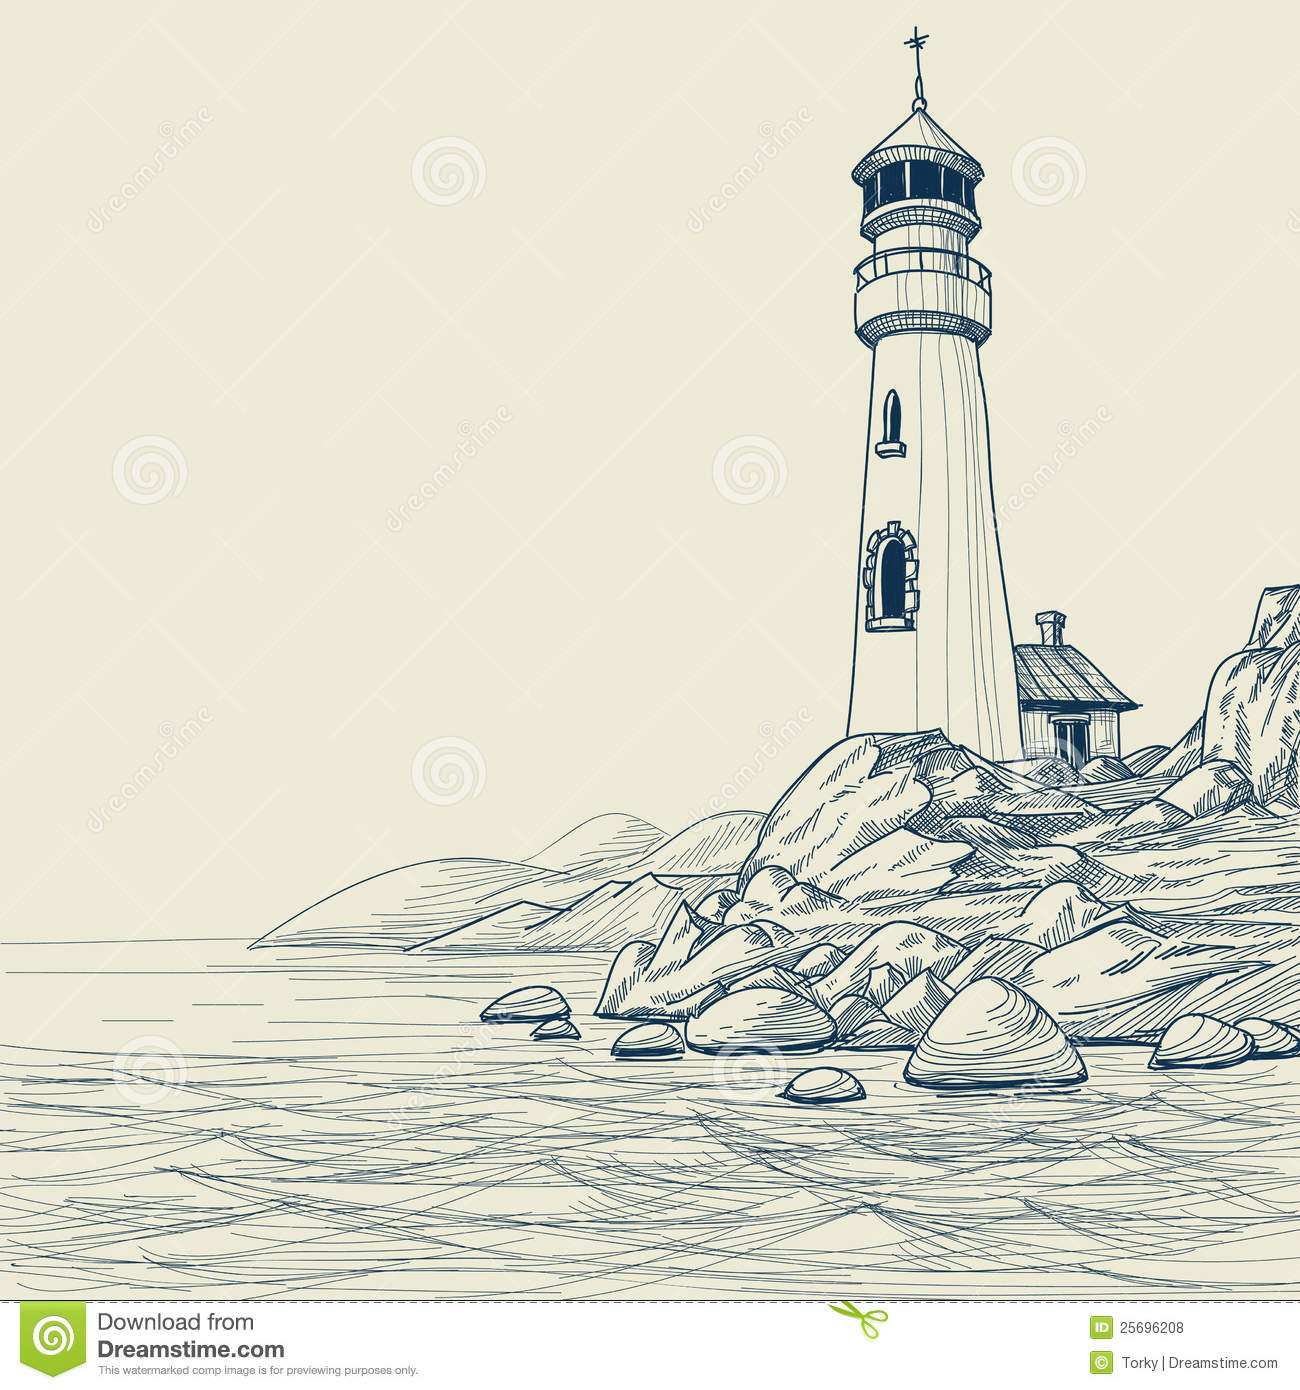 Lighthouse drawing stock vector. Image of postcard ...